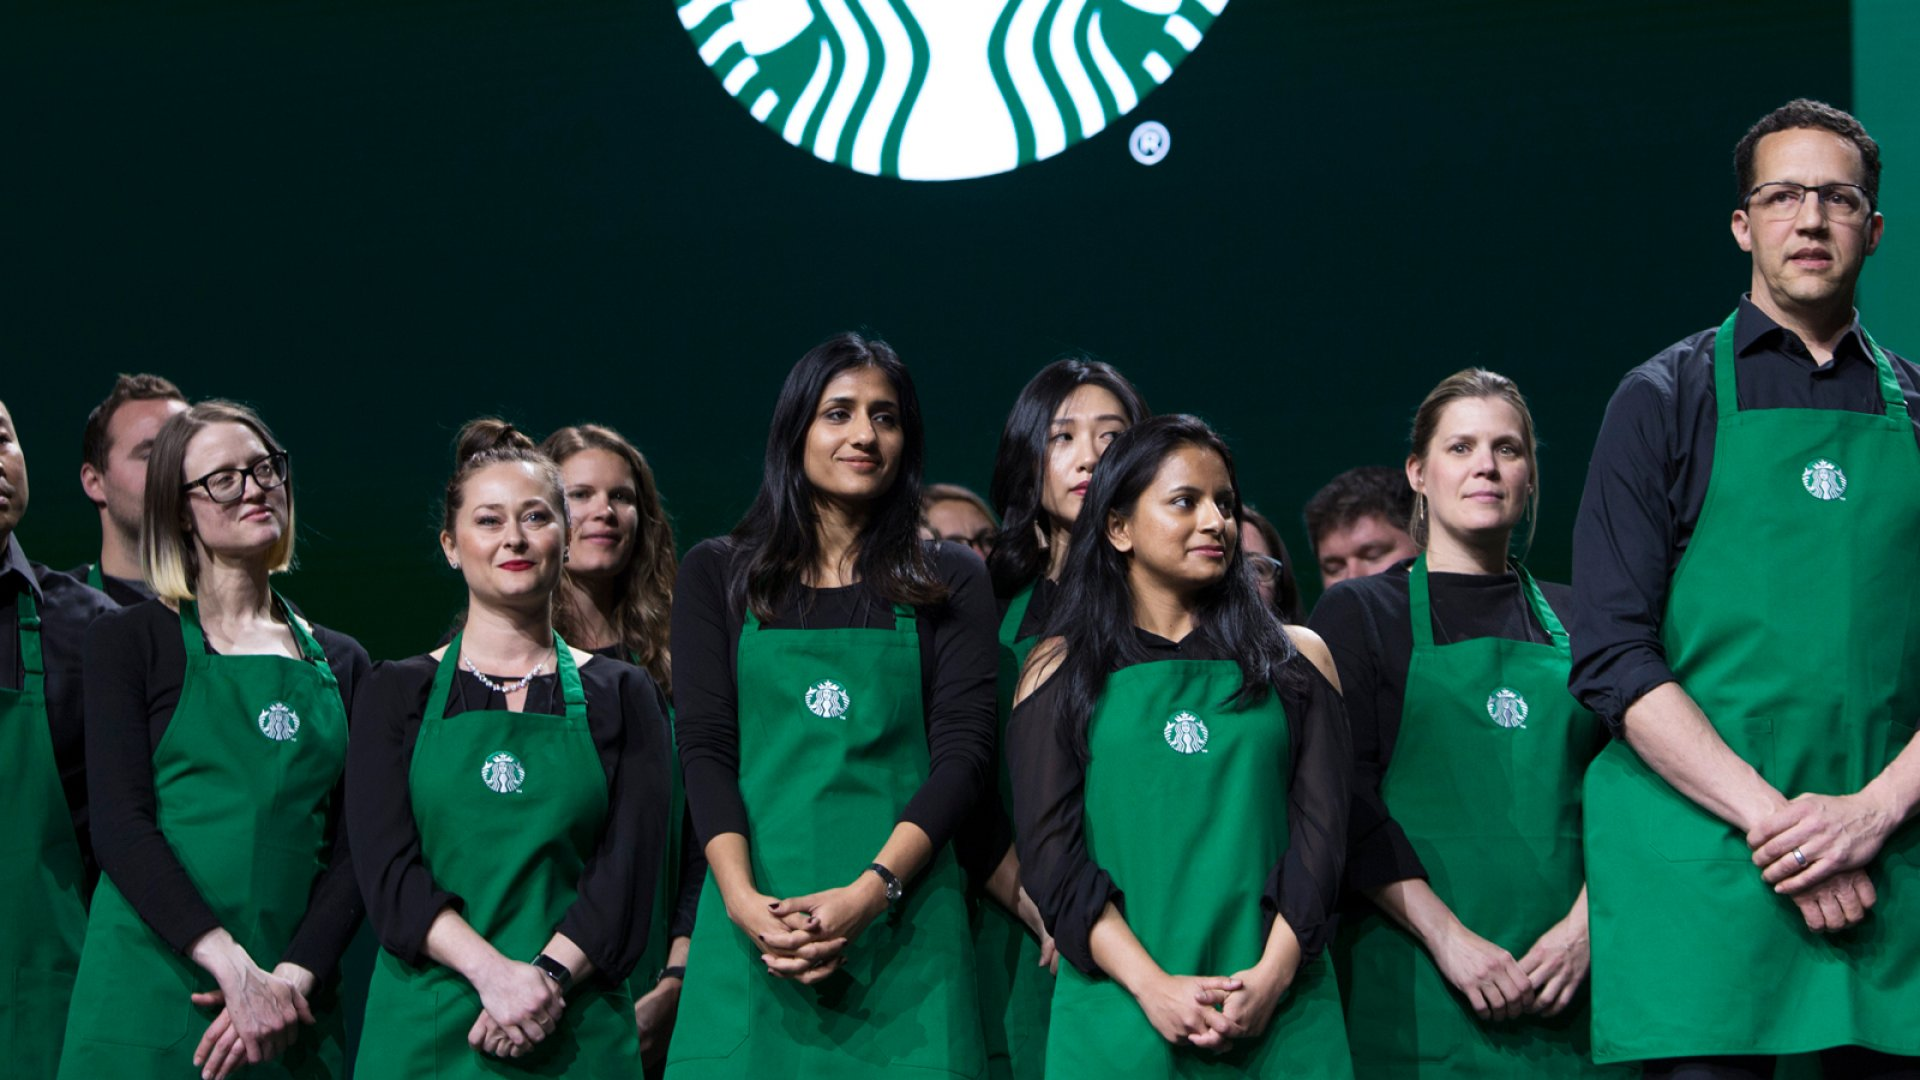 Starbucks Thinks Great Leadership Is So Important That It's Bringing Together These 12,000 Store Managers and Leaders